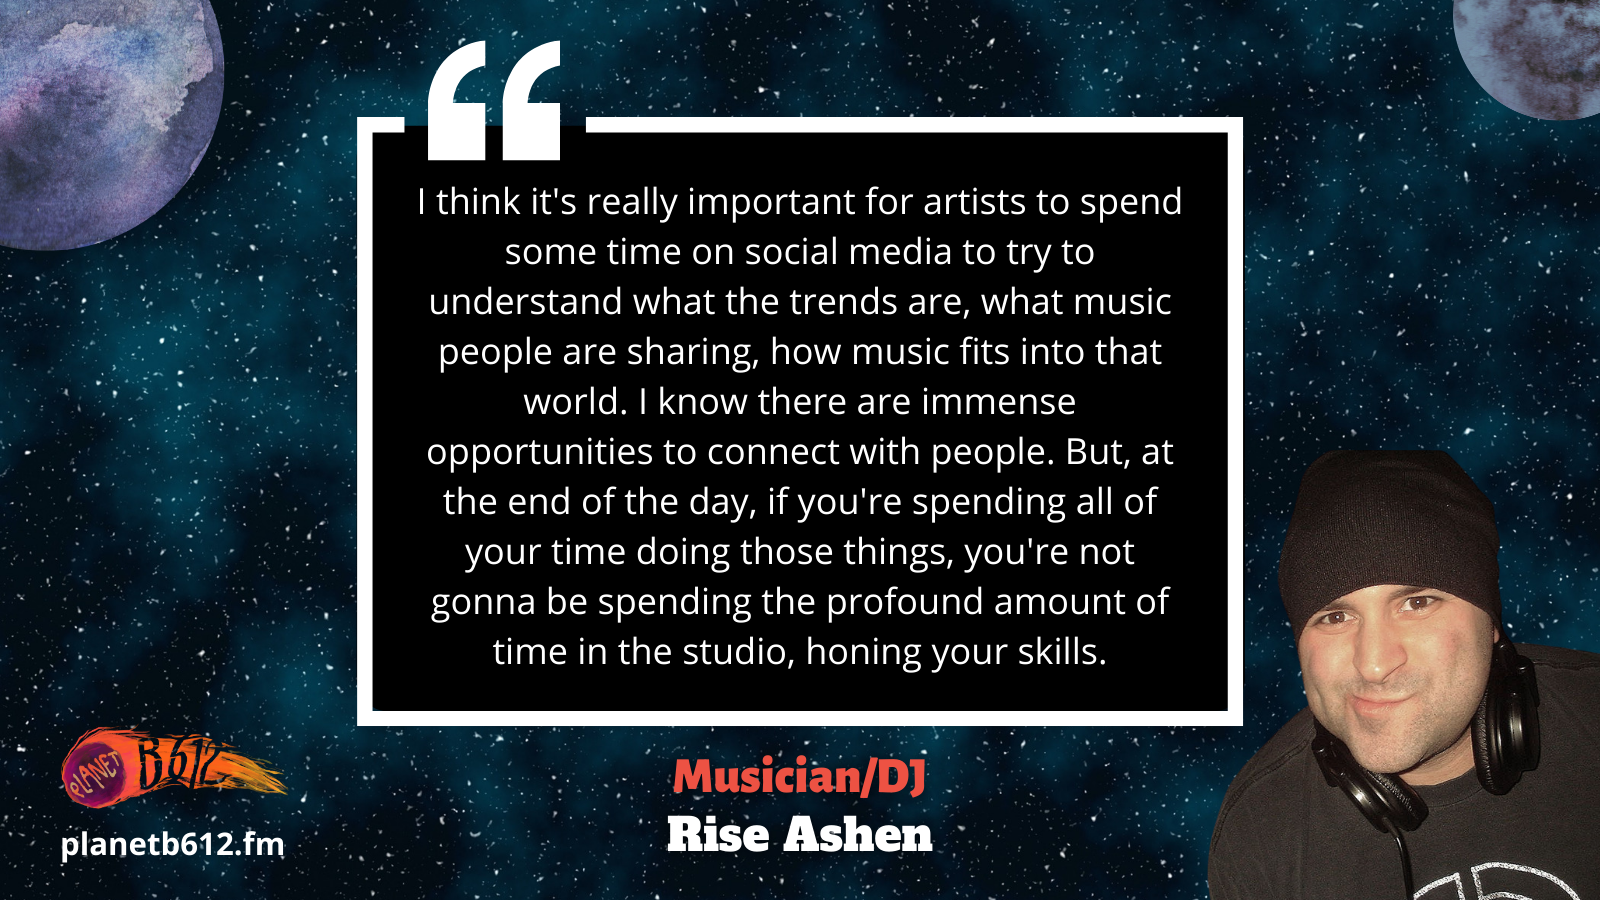 I think it's really important for artists to spend some time on social media to try to understand what the trends are, what music people are sharing, how music fits into that world. I know there are immense opportunities to connect with people. But, at the end of the day, if you're spending all of your time doing those things, you're not gonna be spending the profound amount of time in the studio, honing your skills.